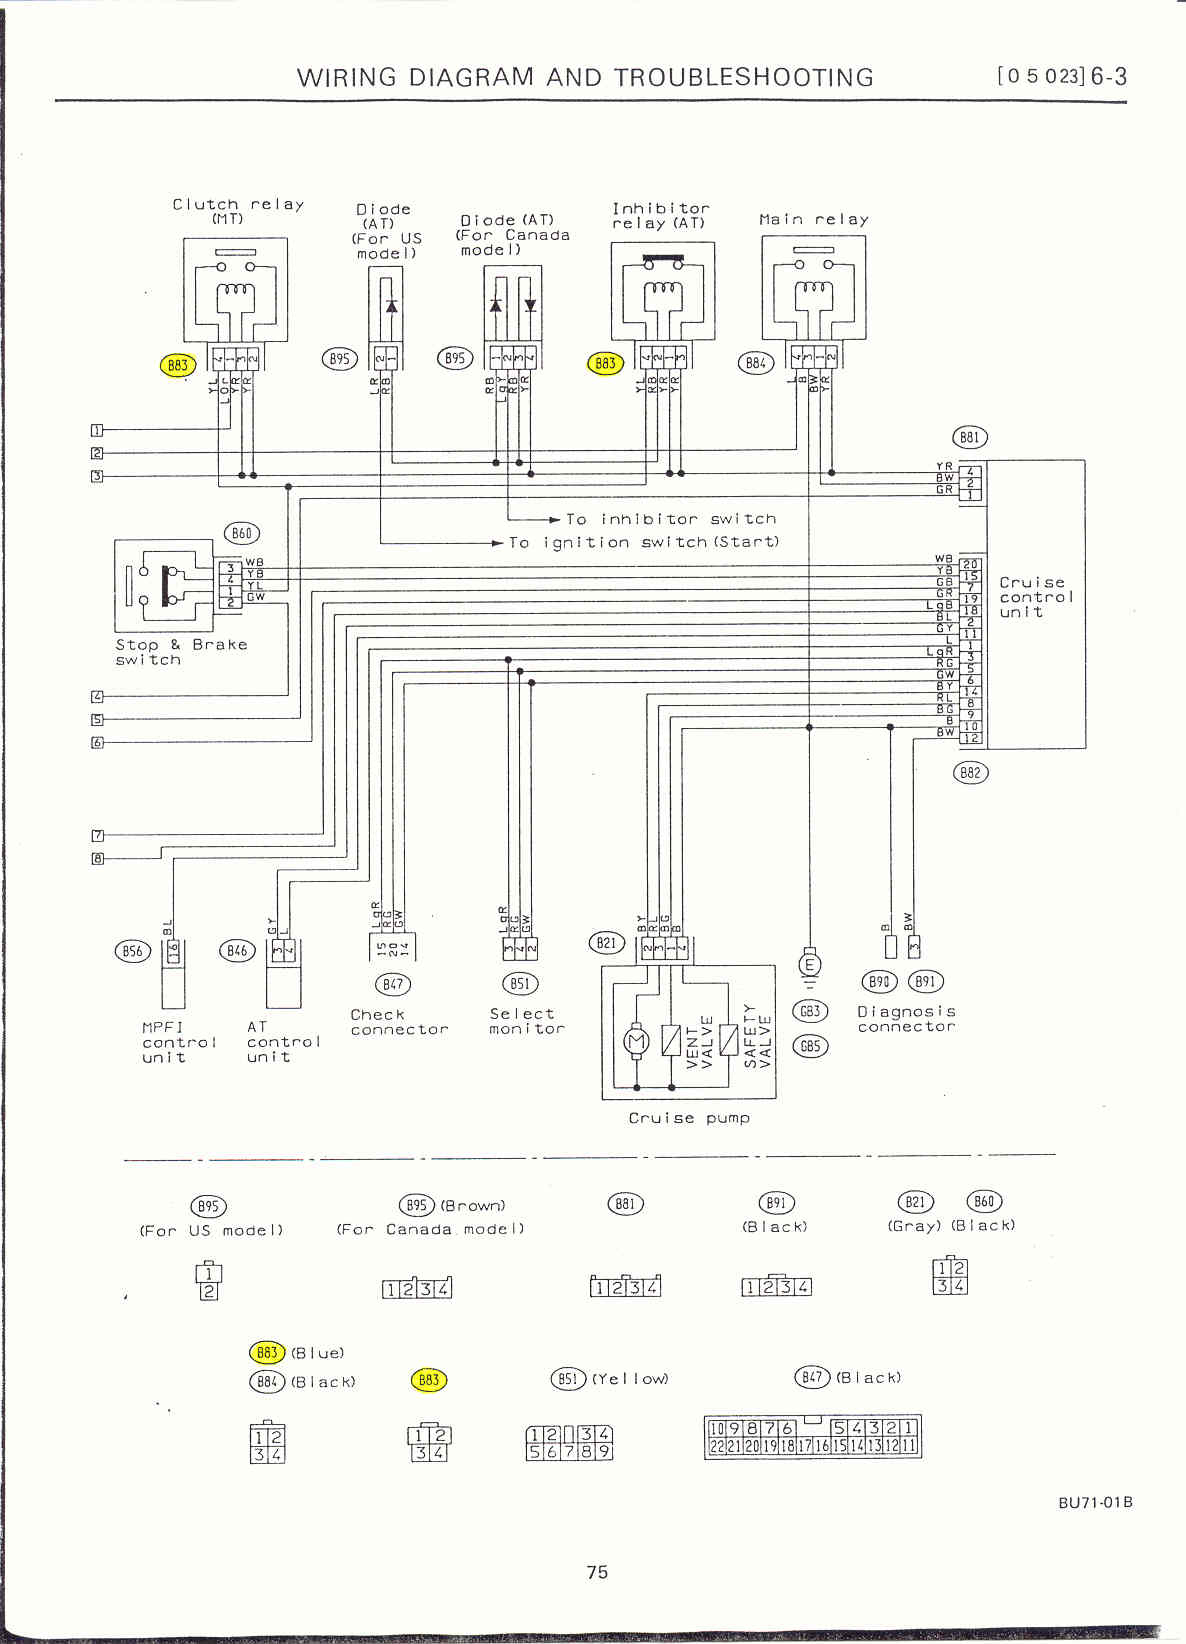 1997 subaru legacy wiring diagram Collection-1997 Subaru Legacy Wiring Diagram Best Legacycentral Bbs • View topic Power Mode Override Switch 6-g